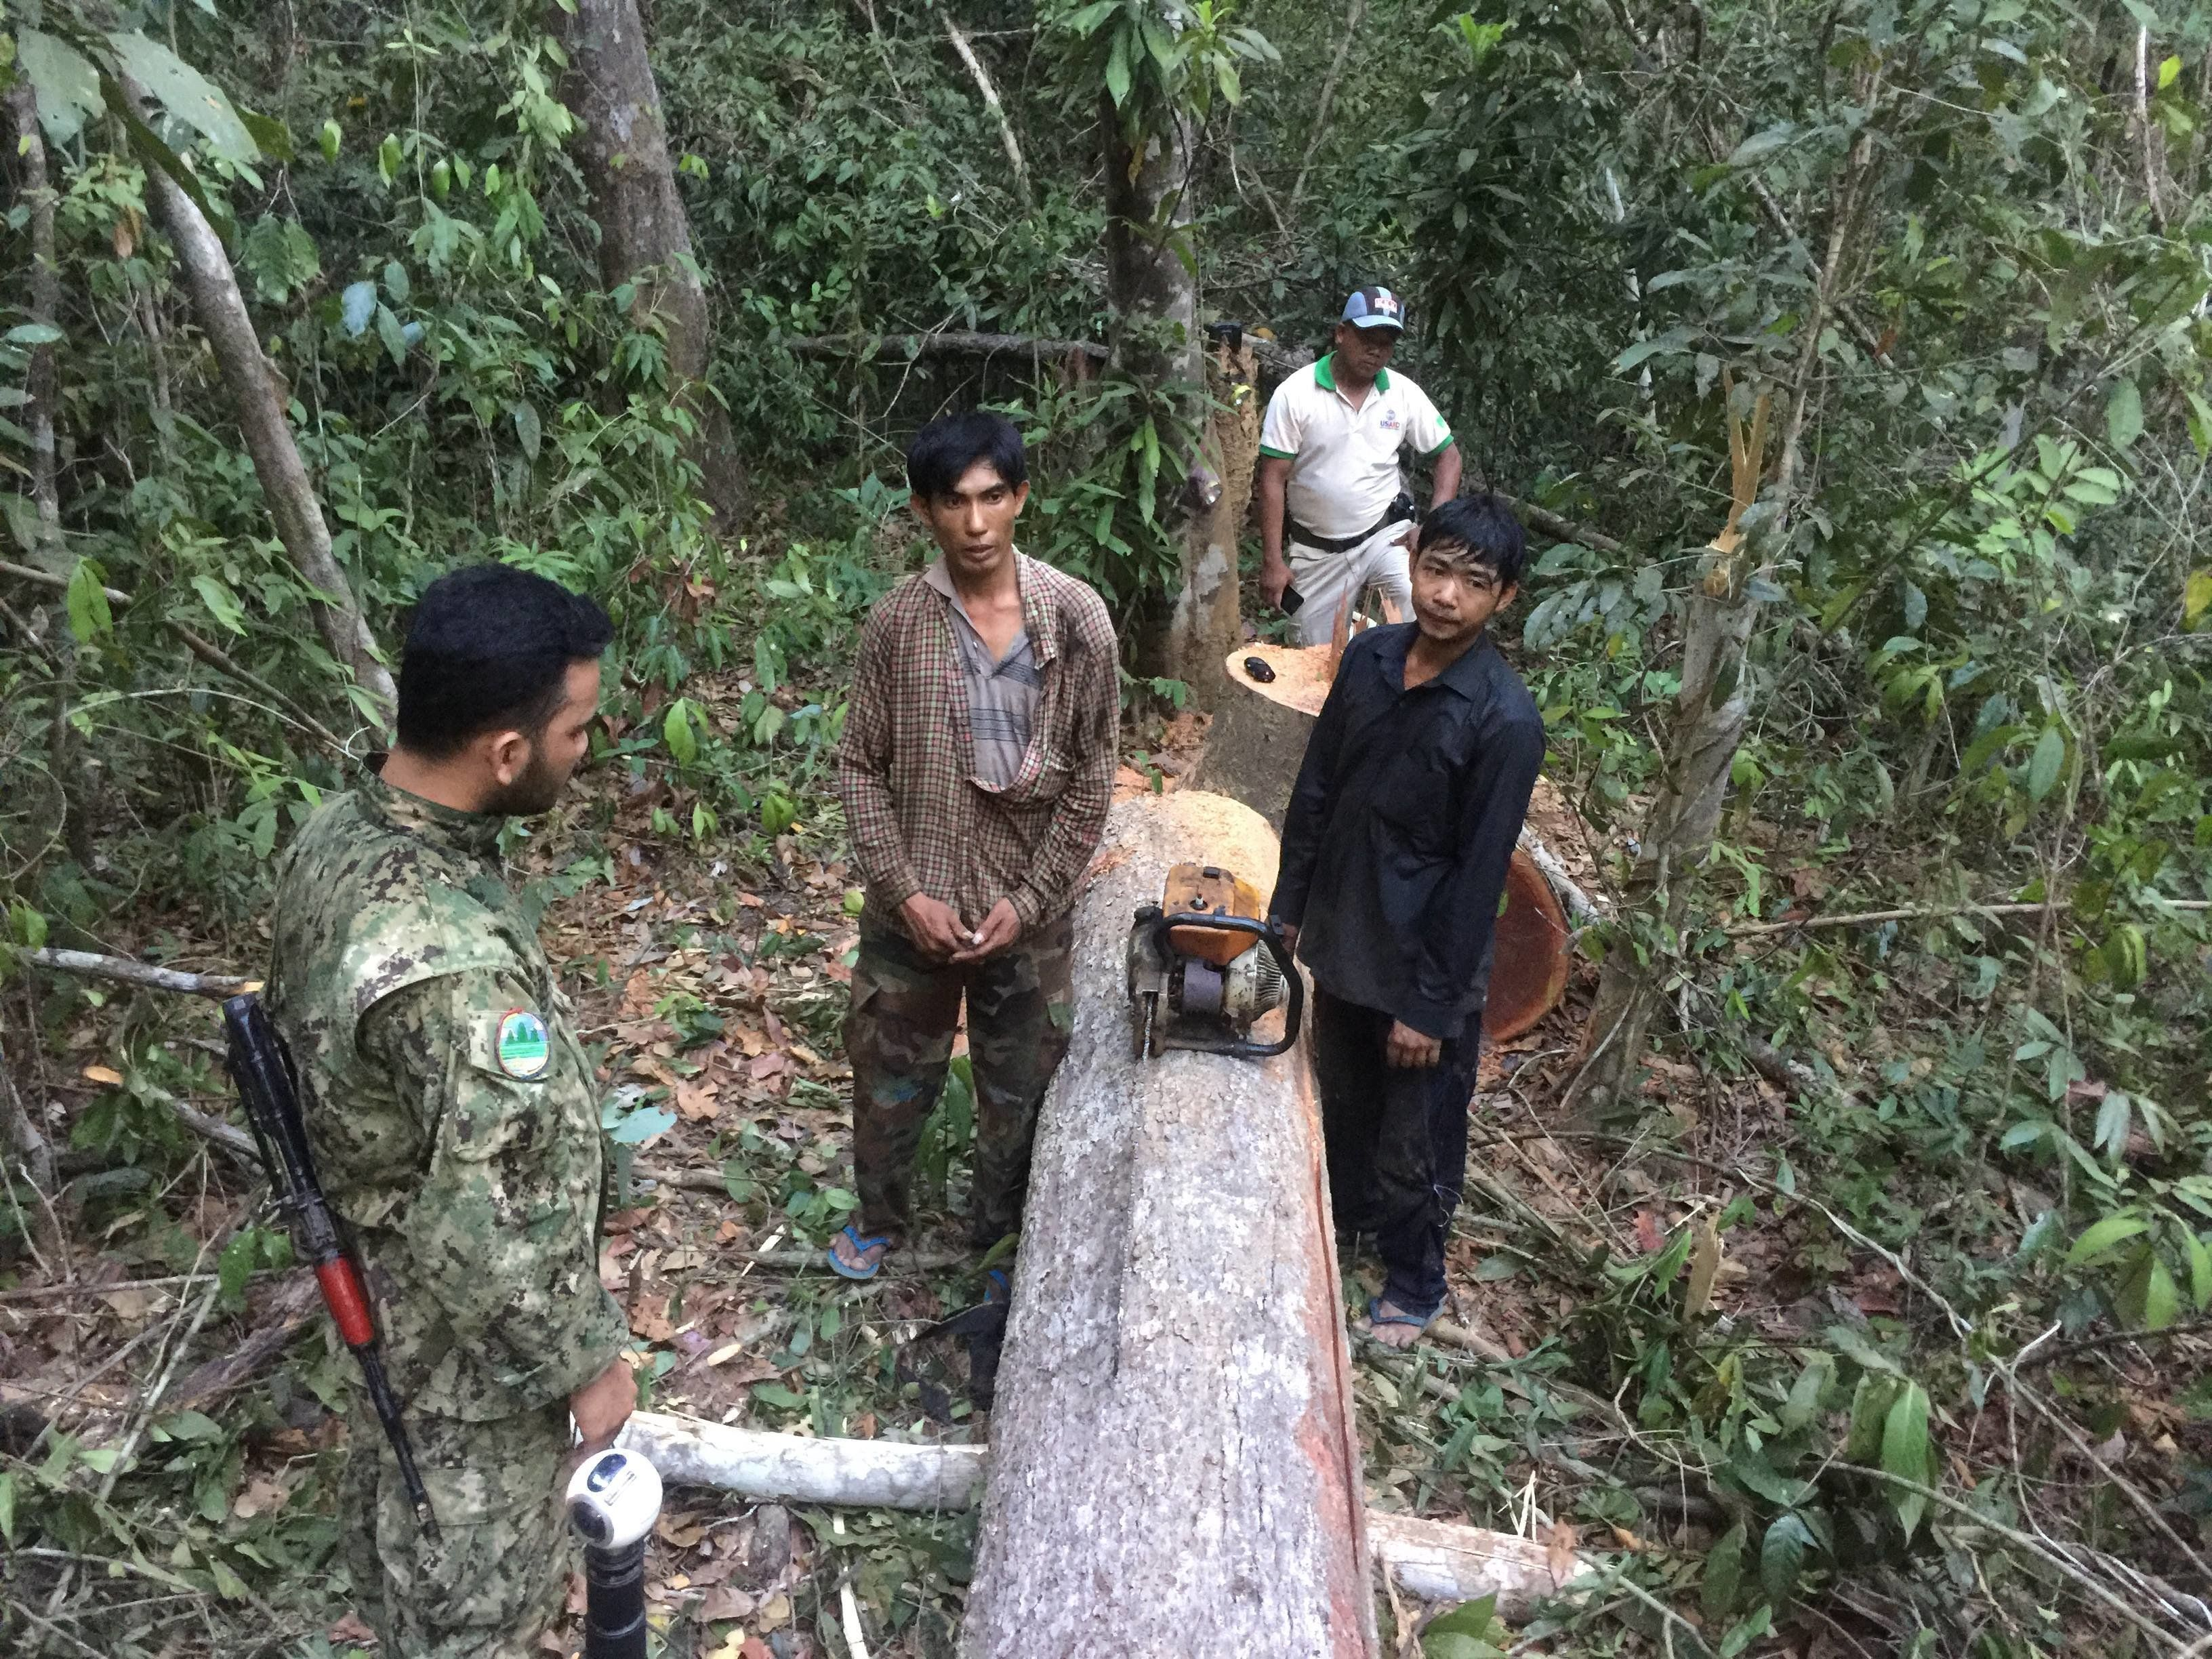 PLCN patrollers catch illegal loggers cutting down trees in the Prey